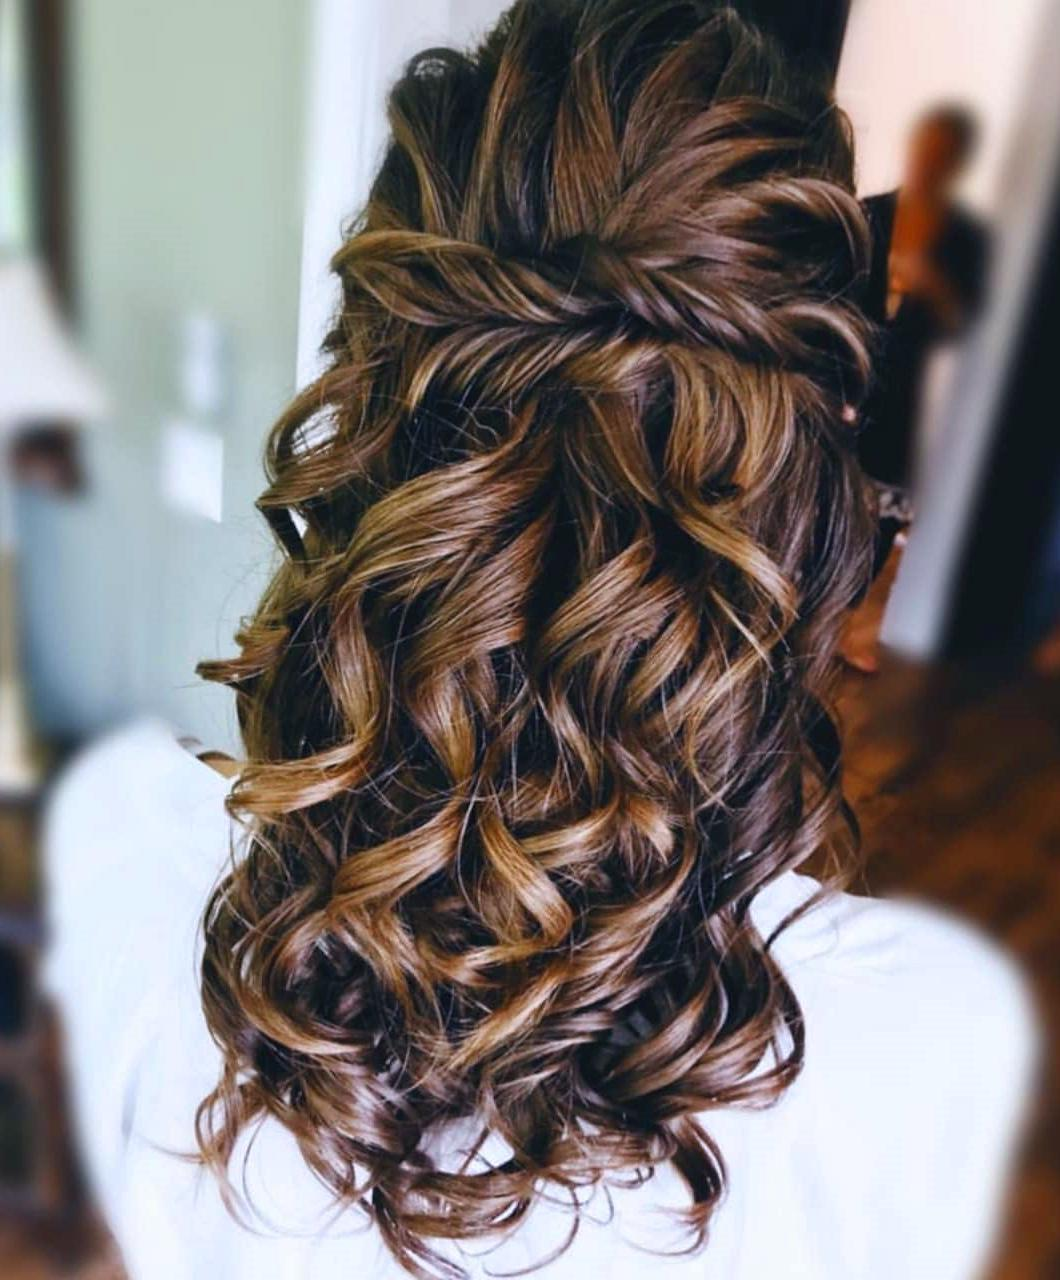 50 Wedding Hair Styles You'll Love